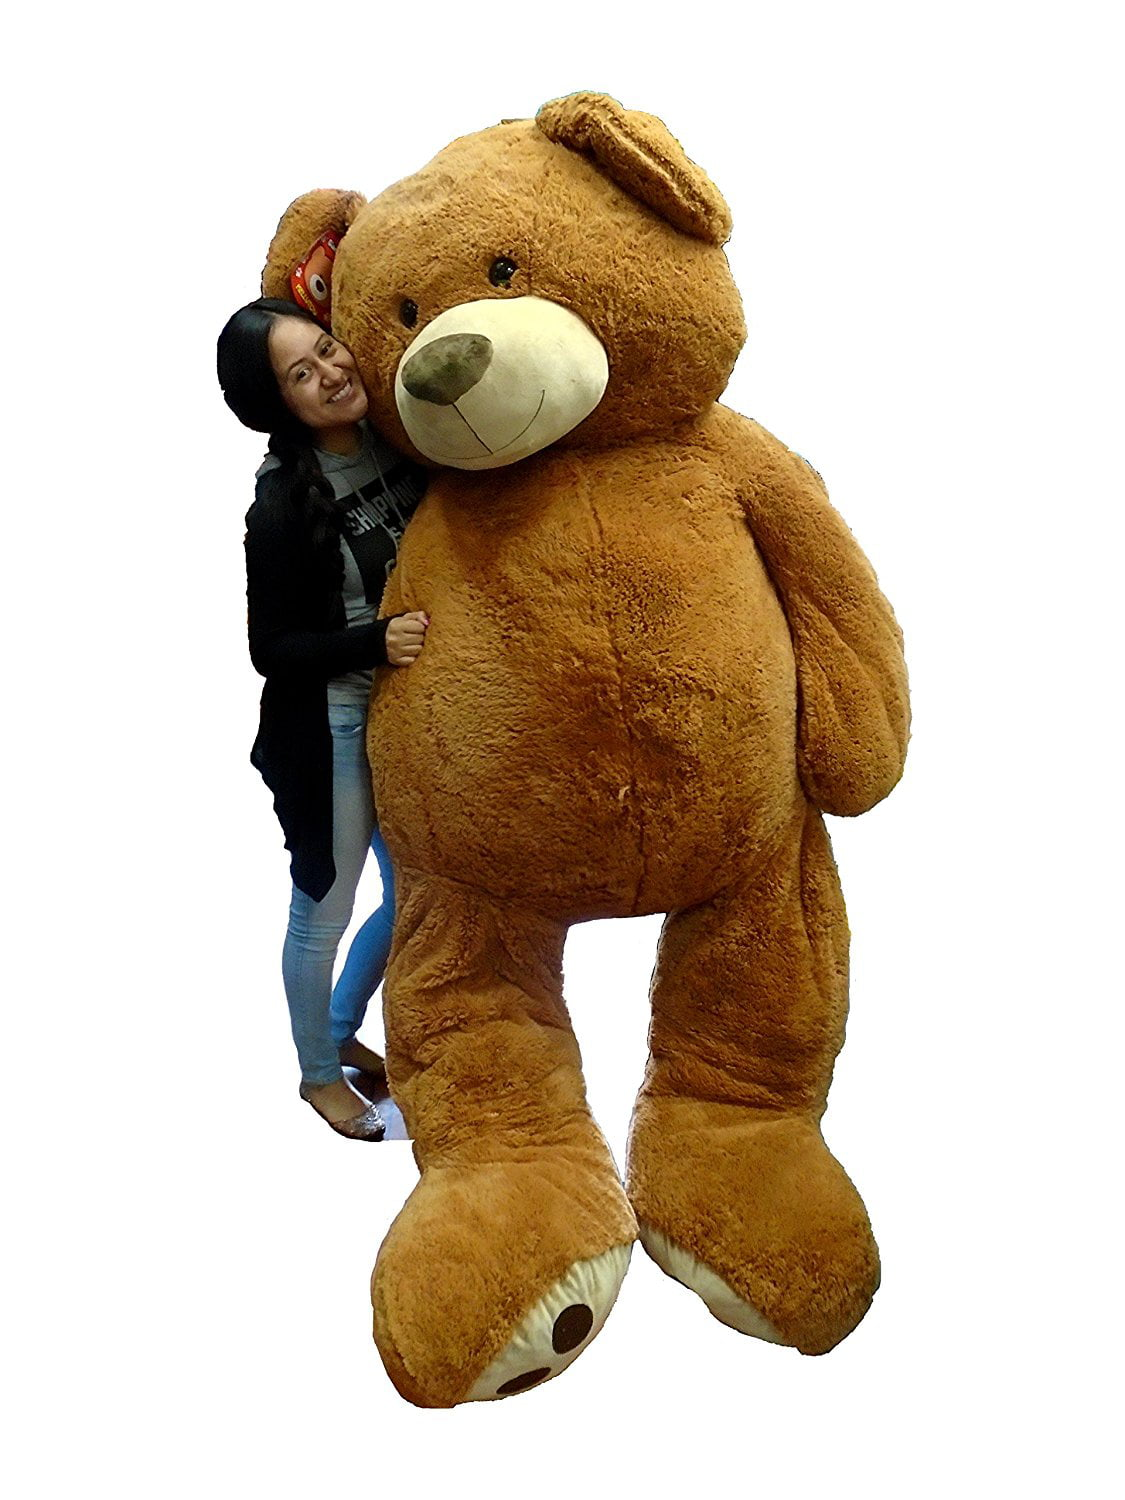 Big Plush Giant Teddy Bear Life Size Brown Teddy Bear Over 93 inches by